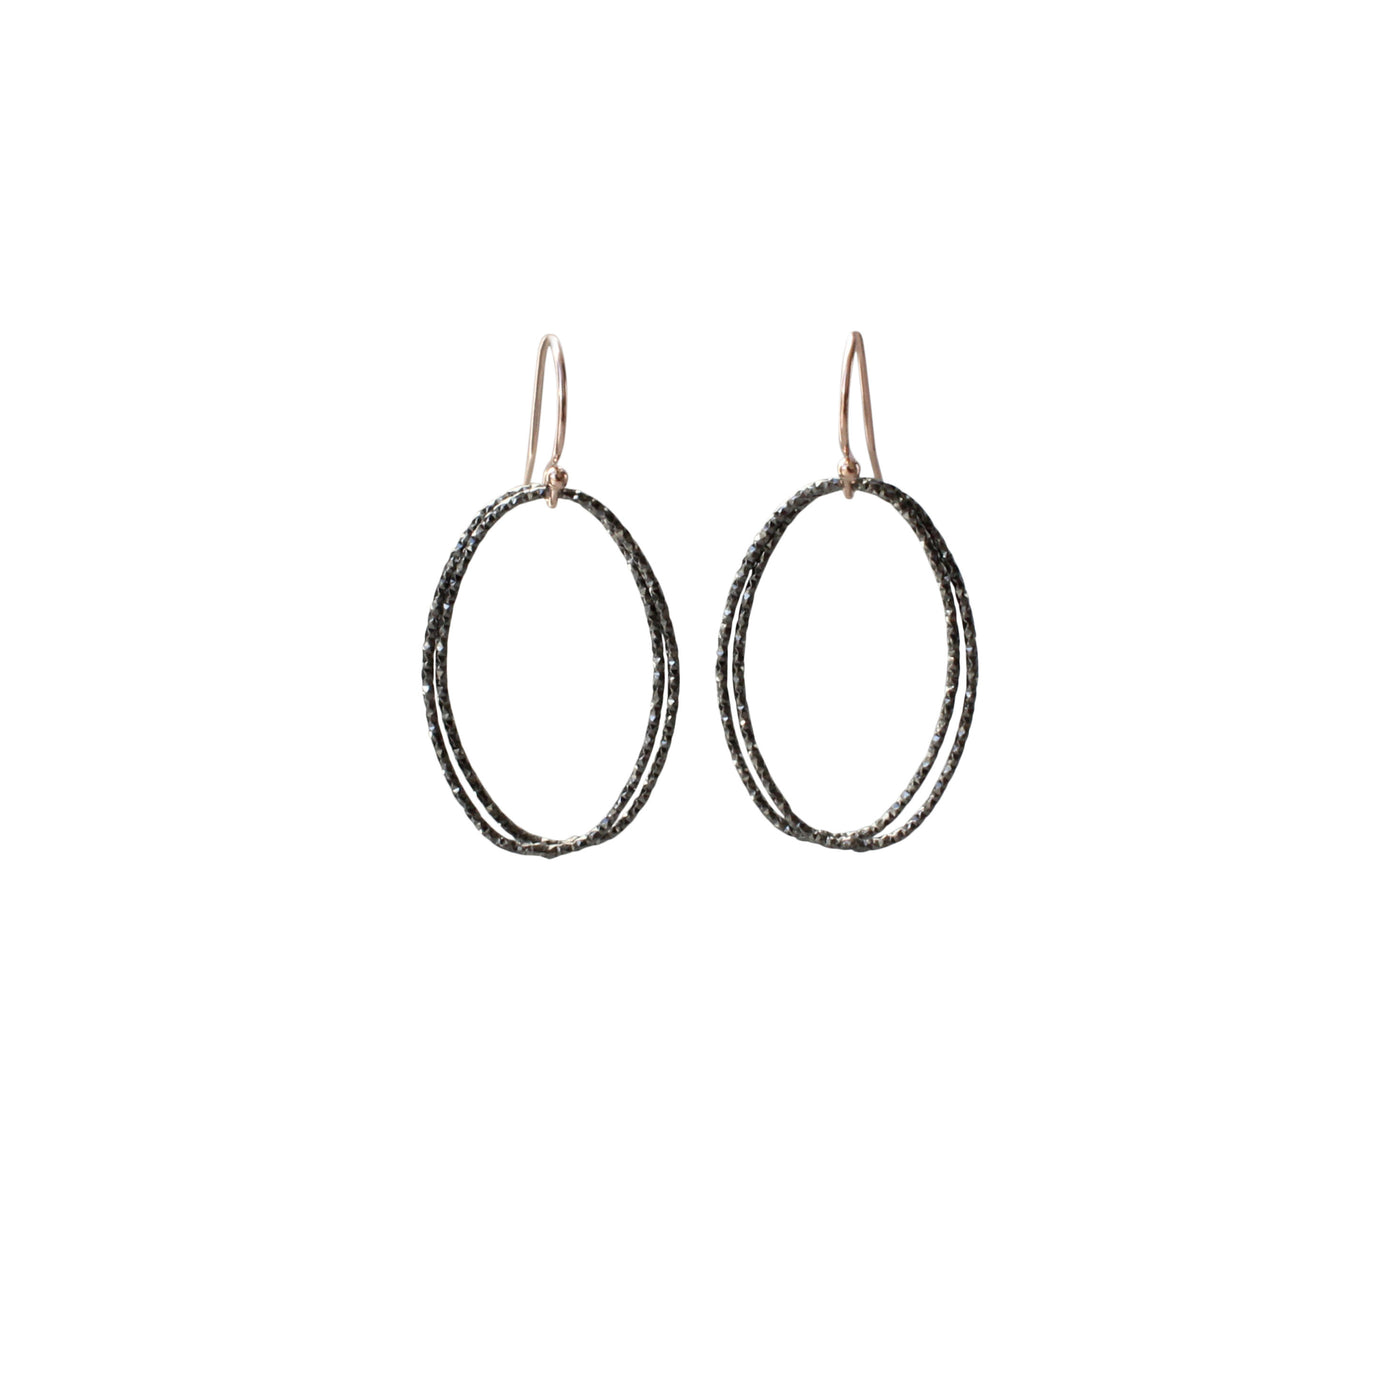 Link Earrings | Hoop Earrings | Rebecca Scott Jewelry | Black | Oxidized Silver | Simple Everyday earrings | Work Appropriate jewelry | Simple minimal jewelry | simple hoops